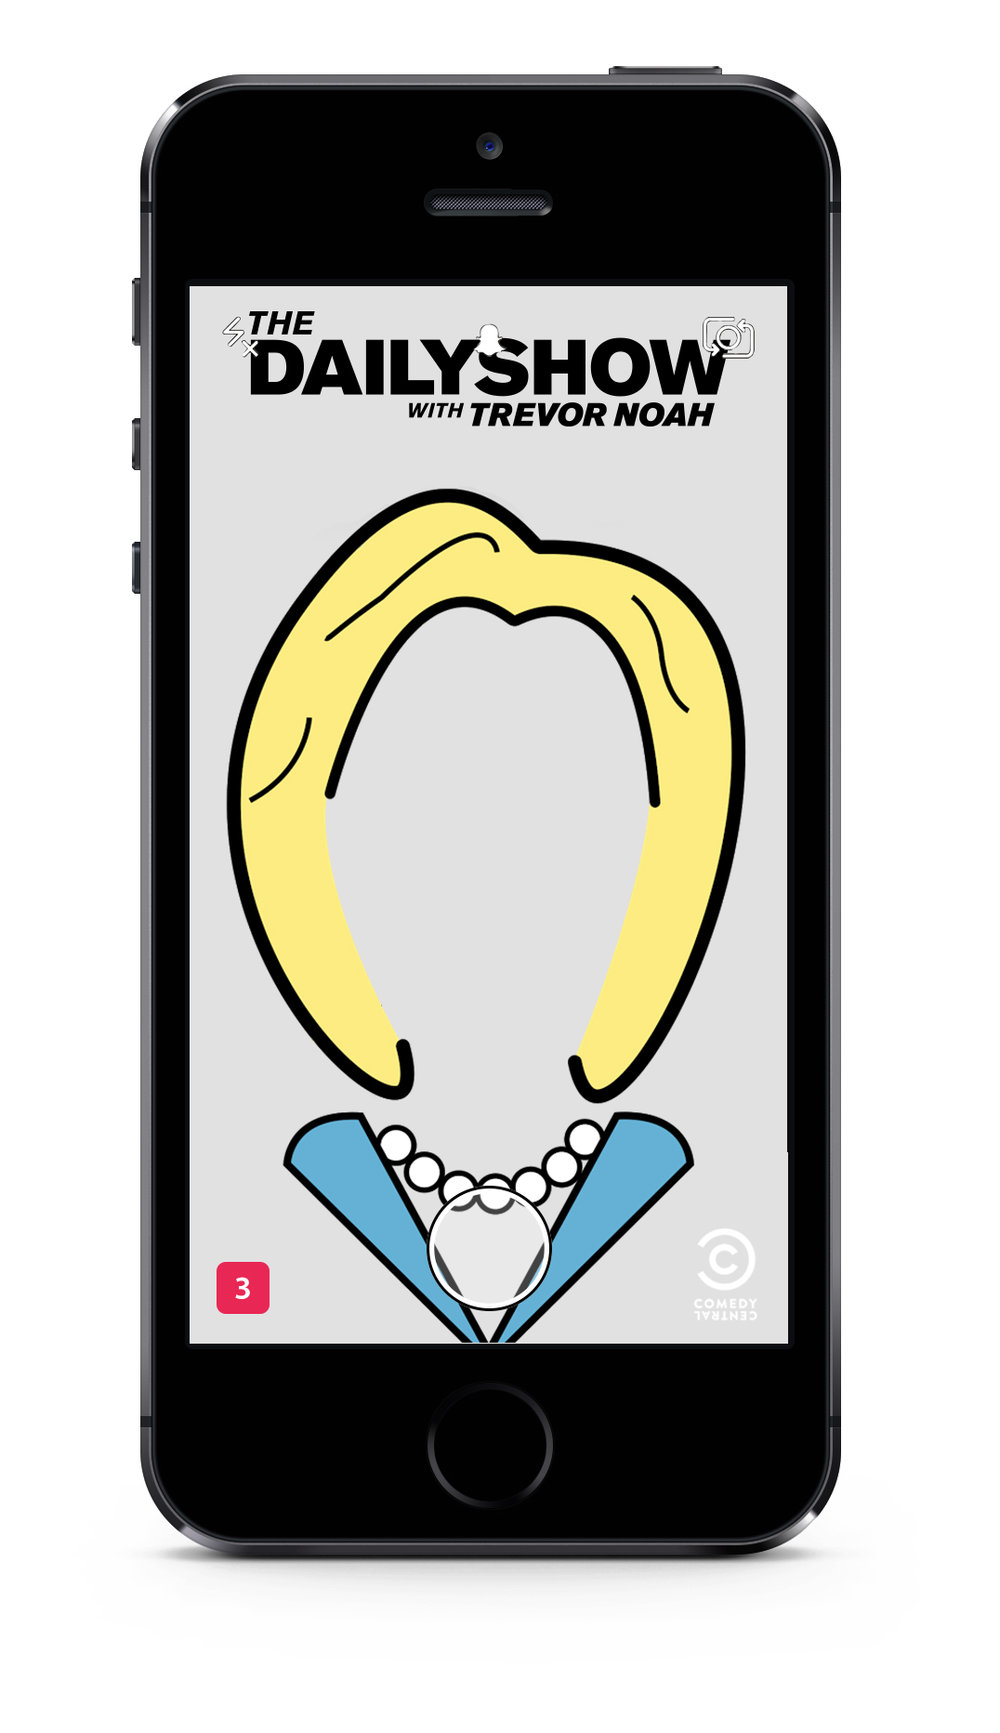 Snapchat Geofilters for The Daily Show